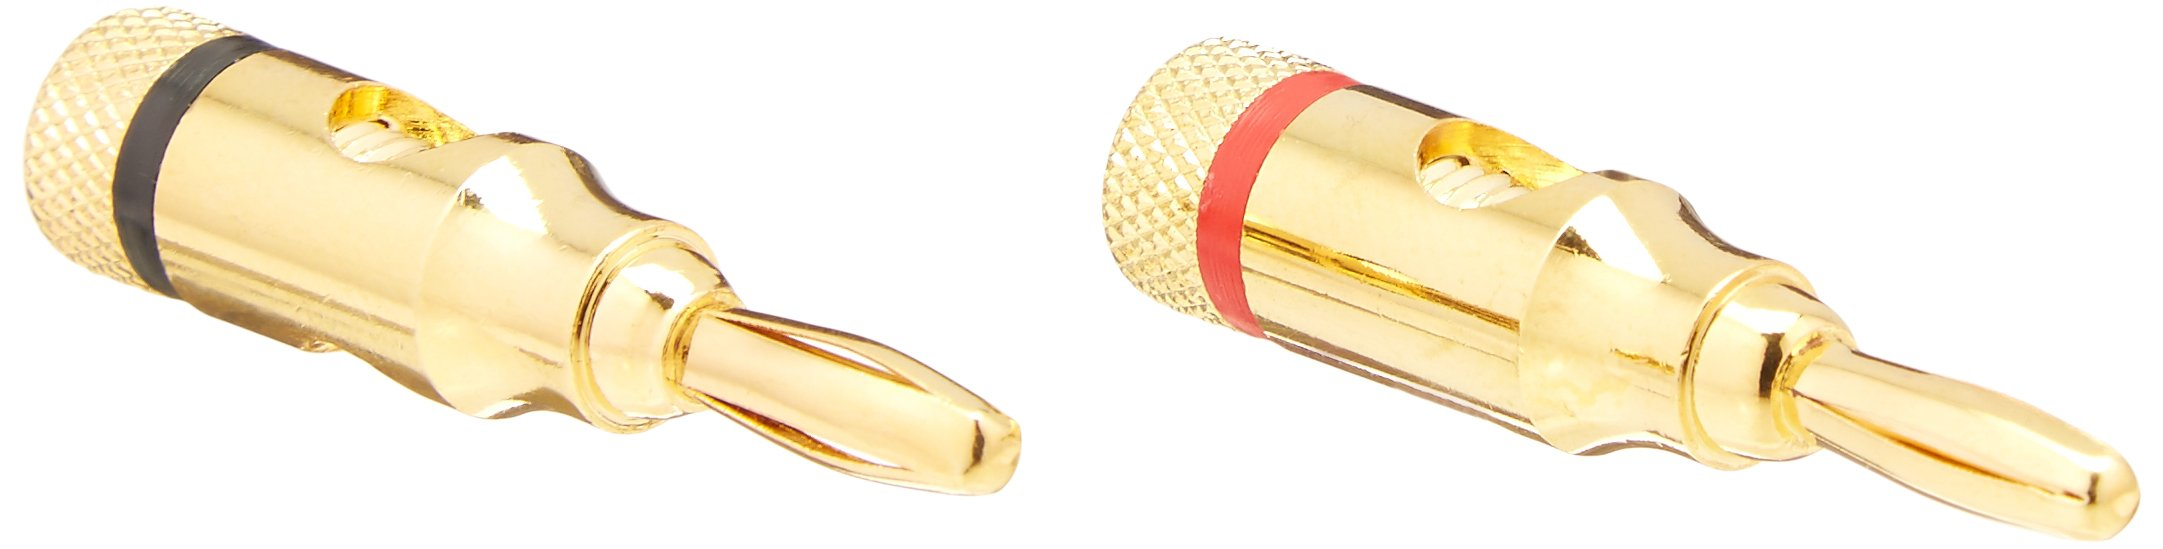 Monoprice Gold Plated Speaker Banana Plugs – 5 Pairs – Open Screw Type, For Speaker Wire, Home Theater, Wall Plates And More